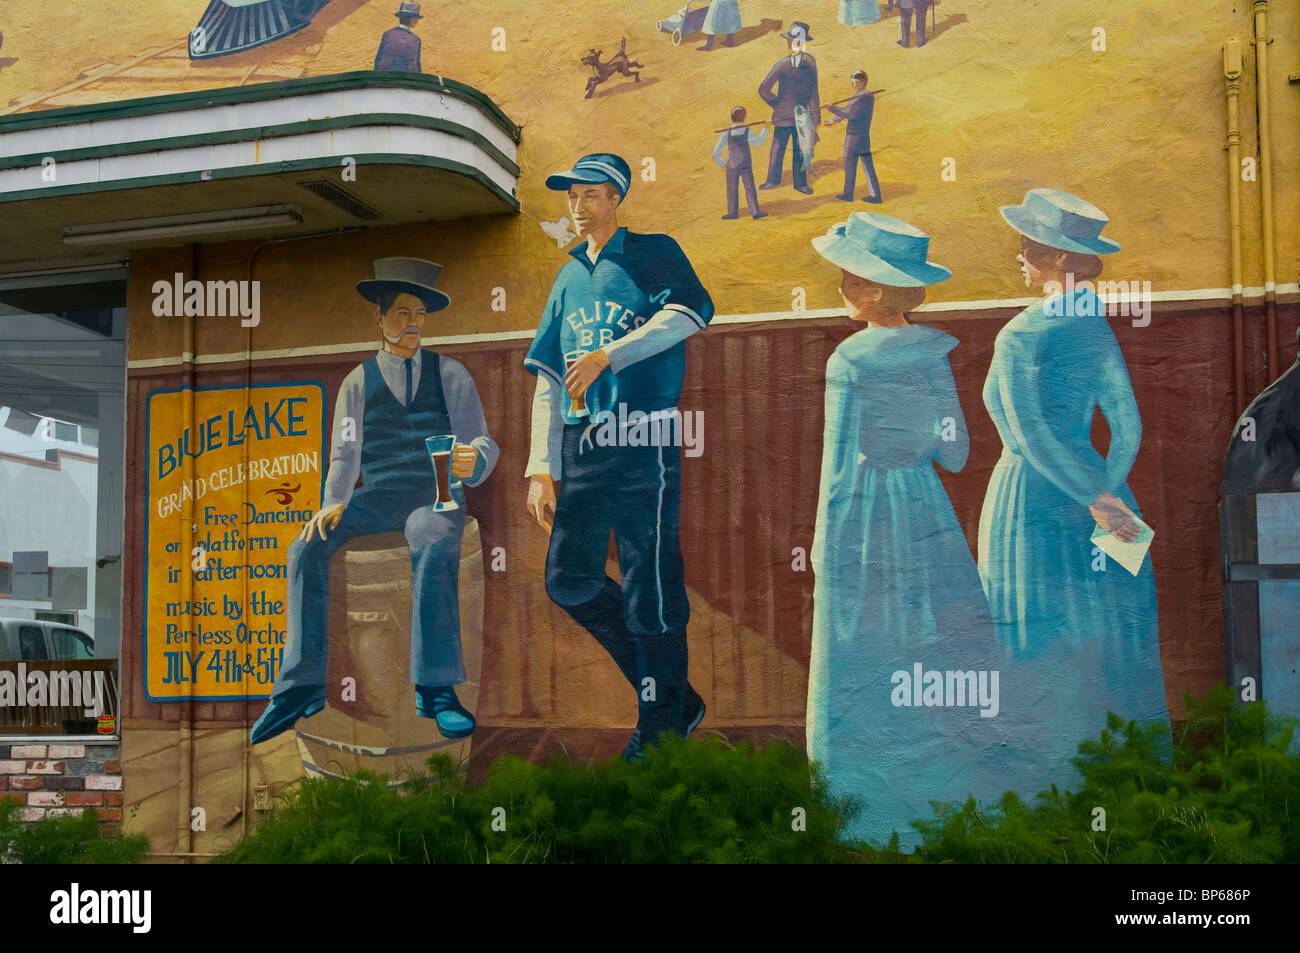 Painted wall mural showing victorian era life in the early 1900's, Blue Lake, Humboldt County, California - Stock Image